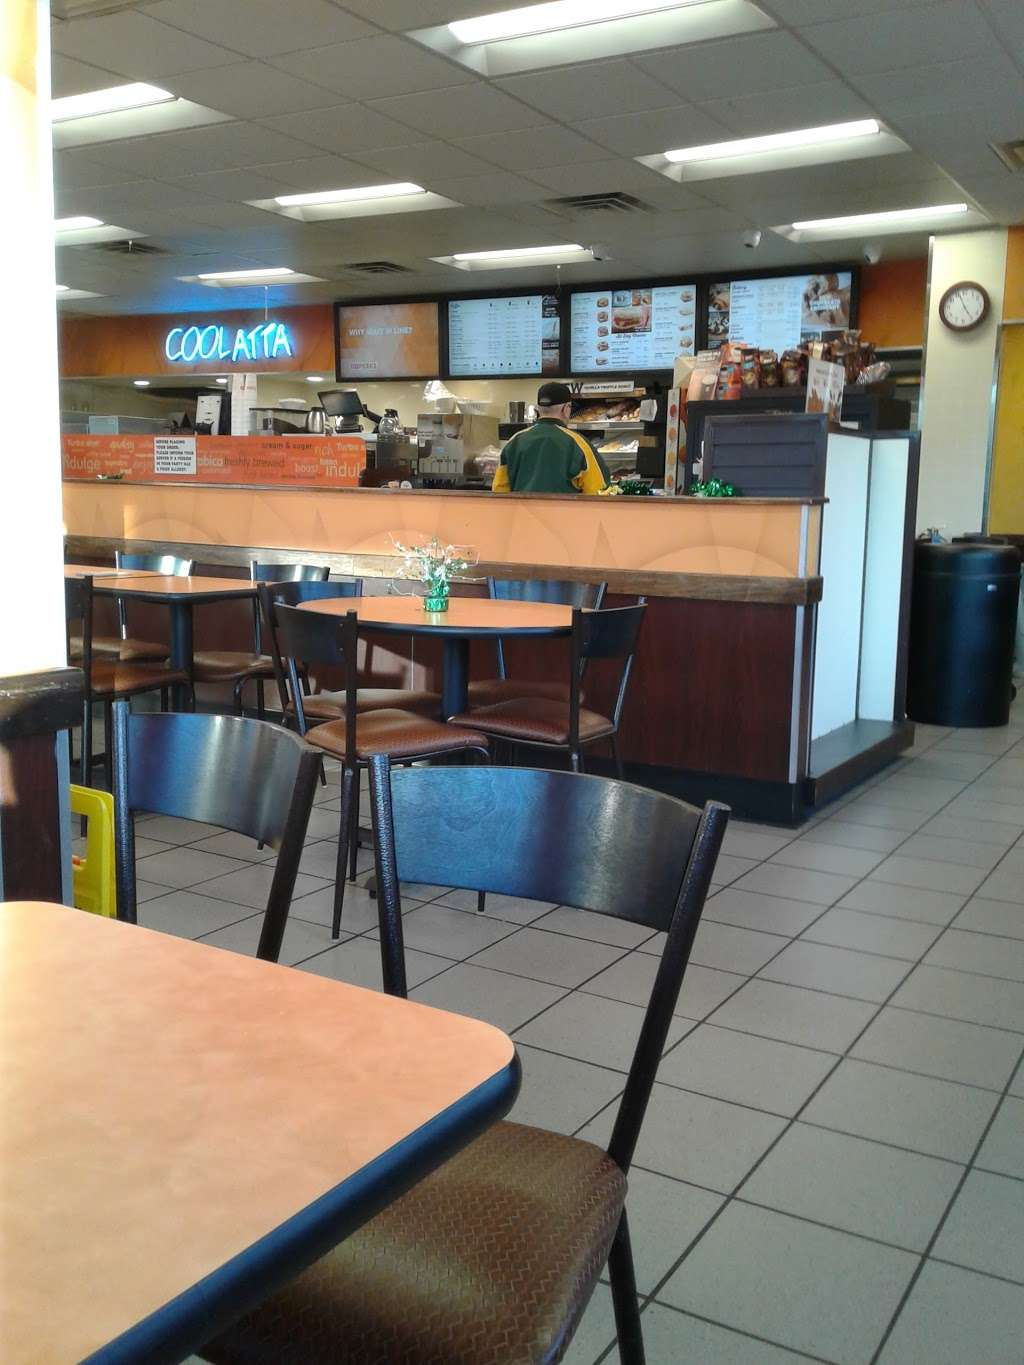 Dunkin Donuts - cafe  | Photo 8 of 10 | Address: 3804 Kirkwood Hwy, Wilmington, DE 19808, USA | Phone: (302) 998-1600